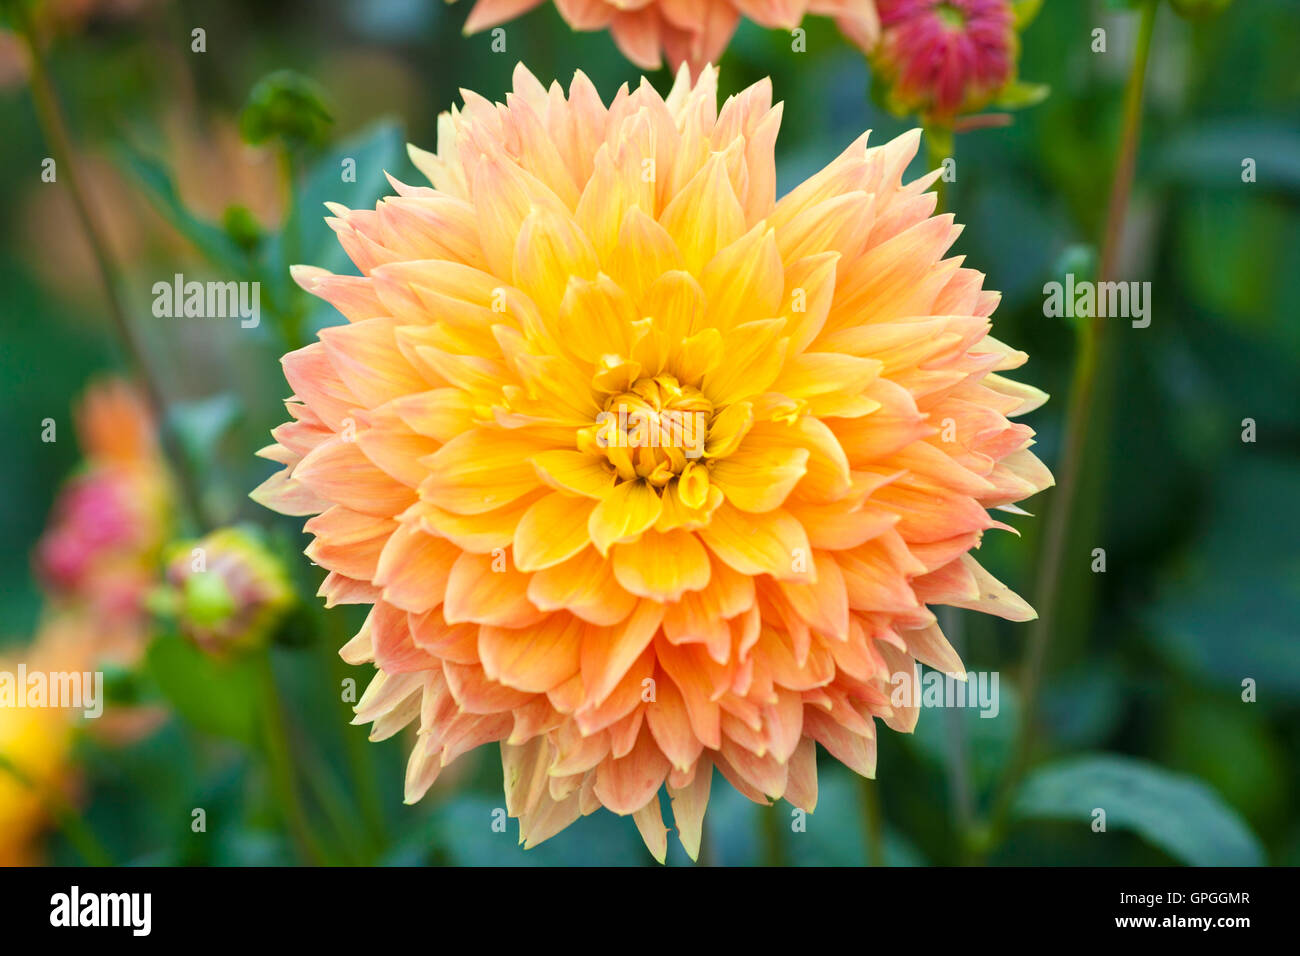 Dahlia orange and yellow flowers full bloom closeup stock photo dahlia orange and yellow flowers full bloom closeup mightylinksfo